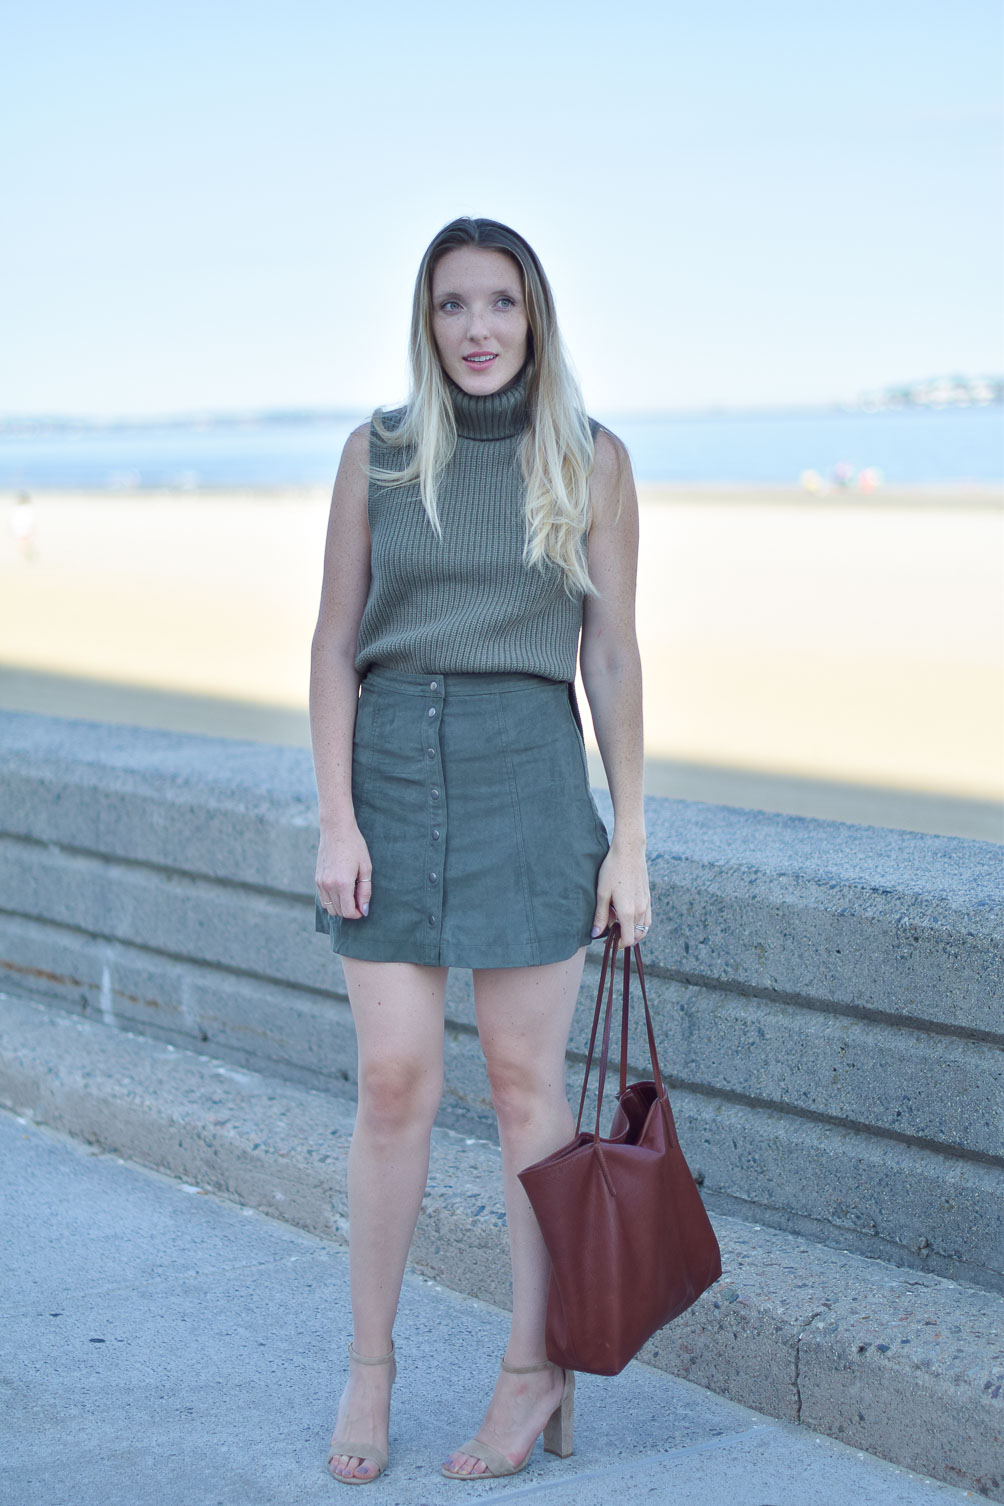 styling a suede skirt for fall with a cozy knit vest and leather tote bag on Leslie Musser of one brass fox